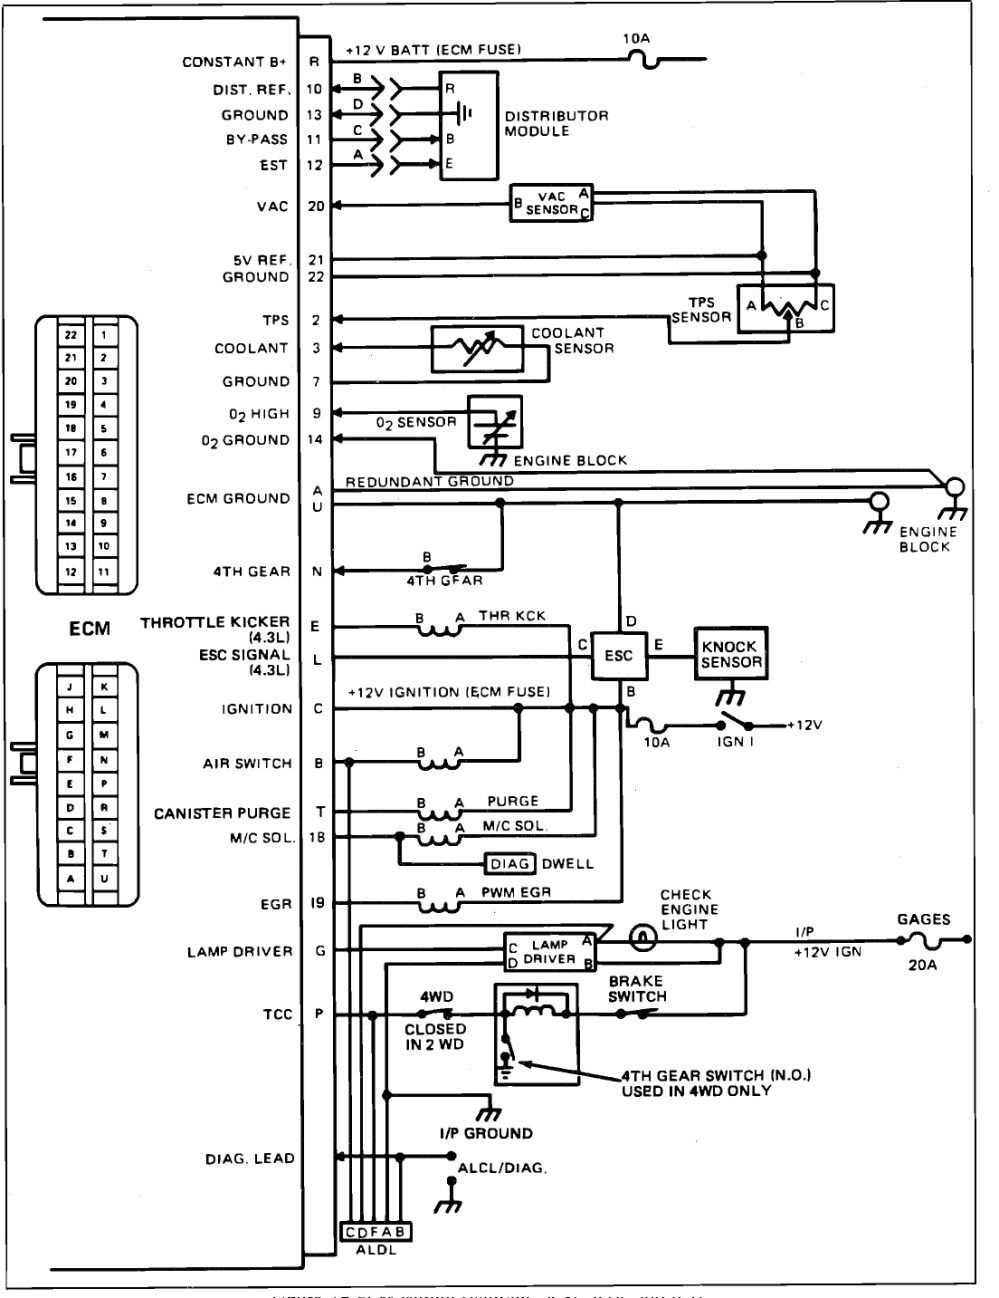 medium resolution of 95 astro fuse box wiring diagram 1995 chevy astro fuse diagram 95 astro wiring diagram blog